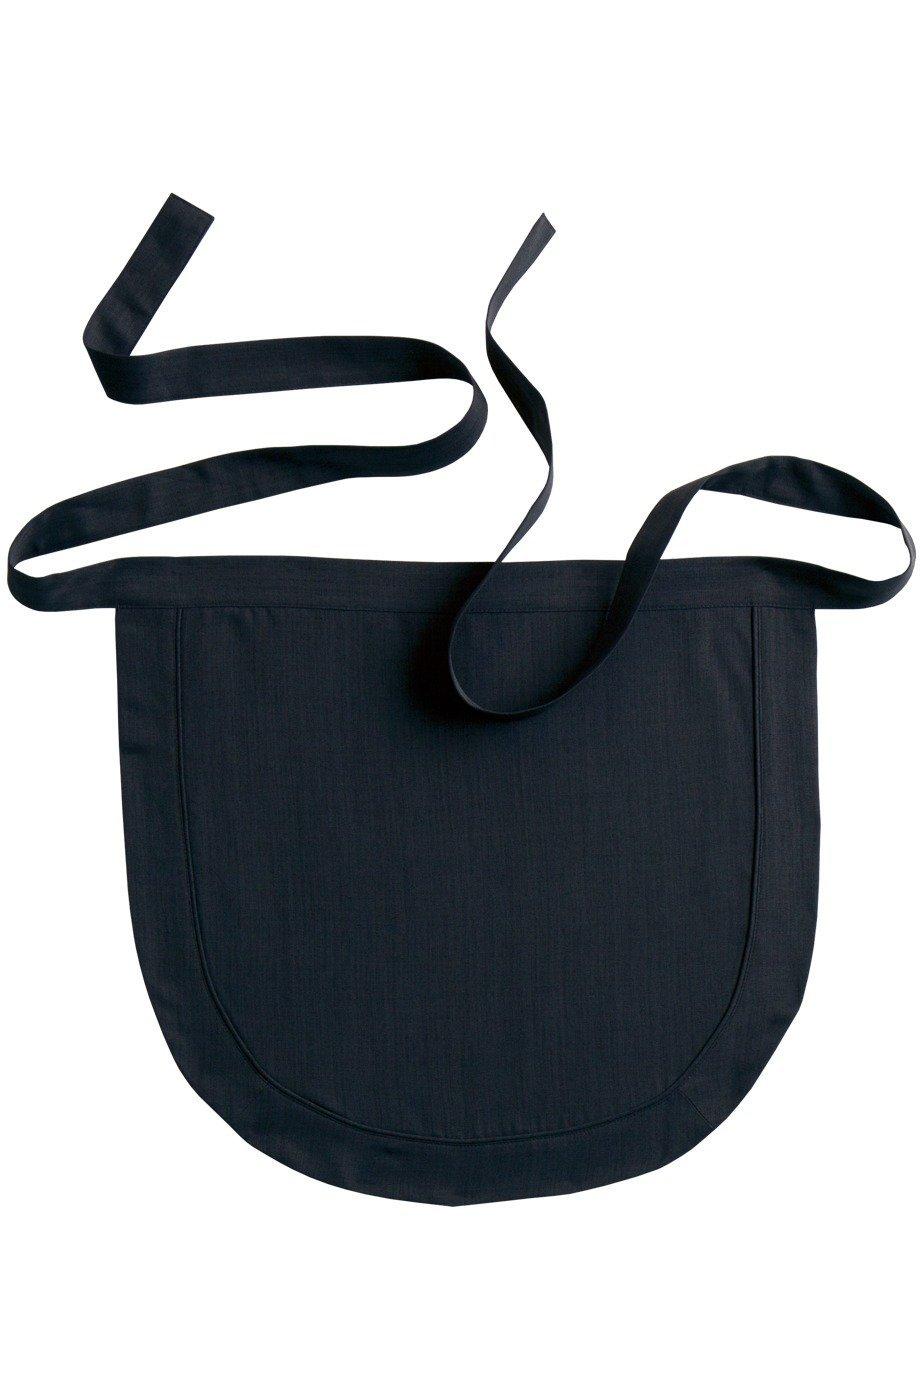 Graphite Ladies' Premier Apron (No Pockets)